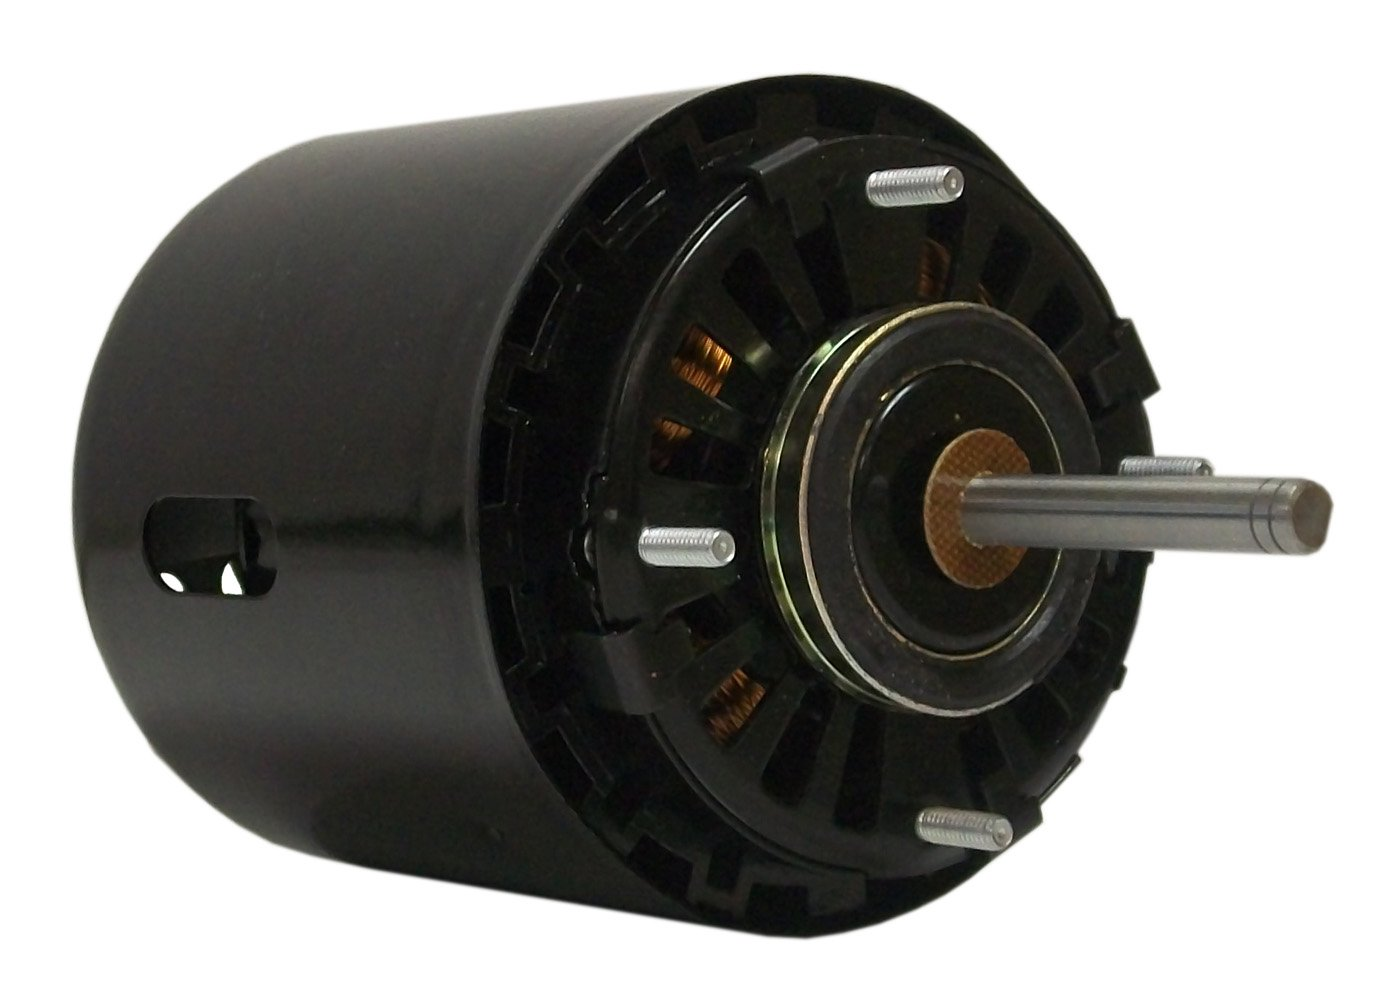 Fasco D471 3.3-Inch Refrigeration Fan Motor, 1/20 HP, 208-230 Volts, 1550 RPM, 1 Speed, 1.1 Amps, OAO Enclosure, CCWSE Rotation, Sleeve Bearing